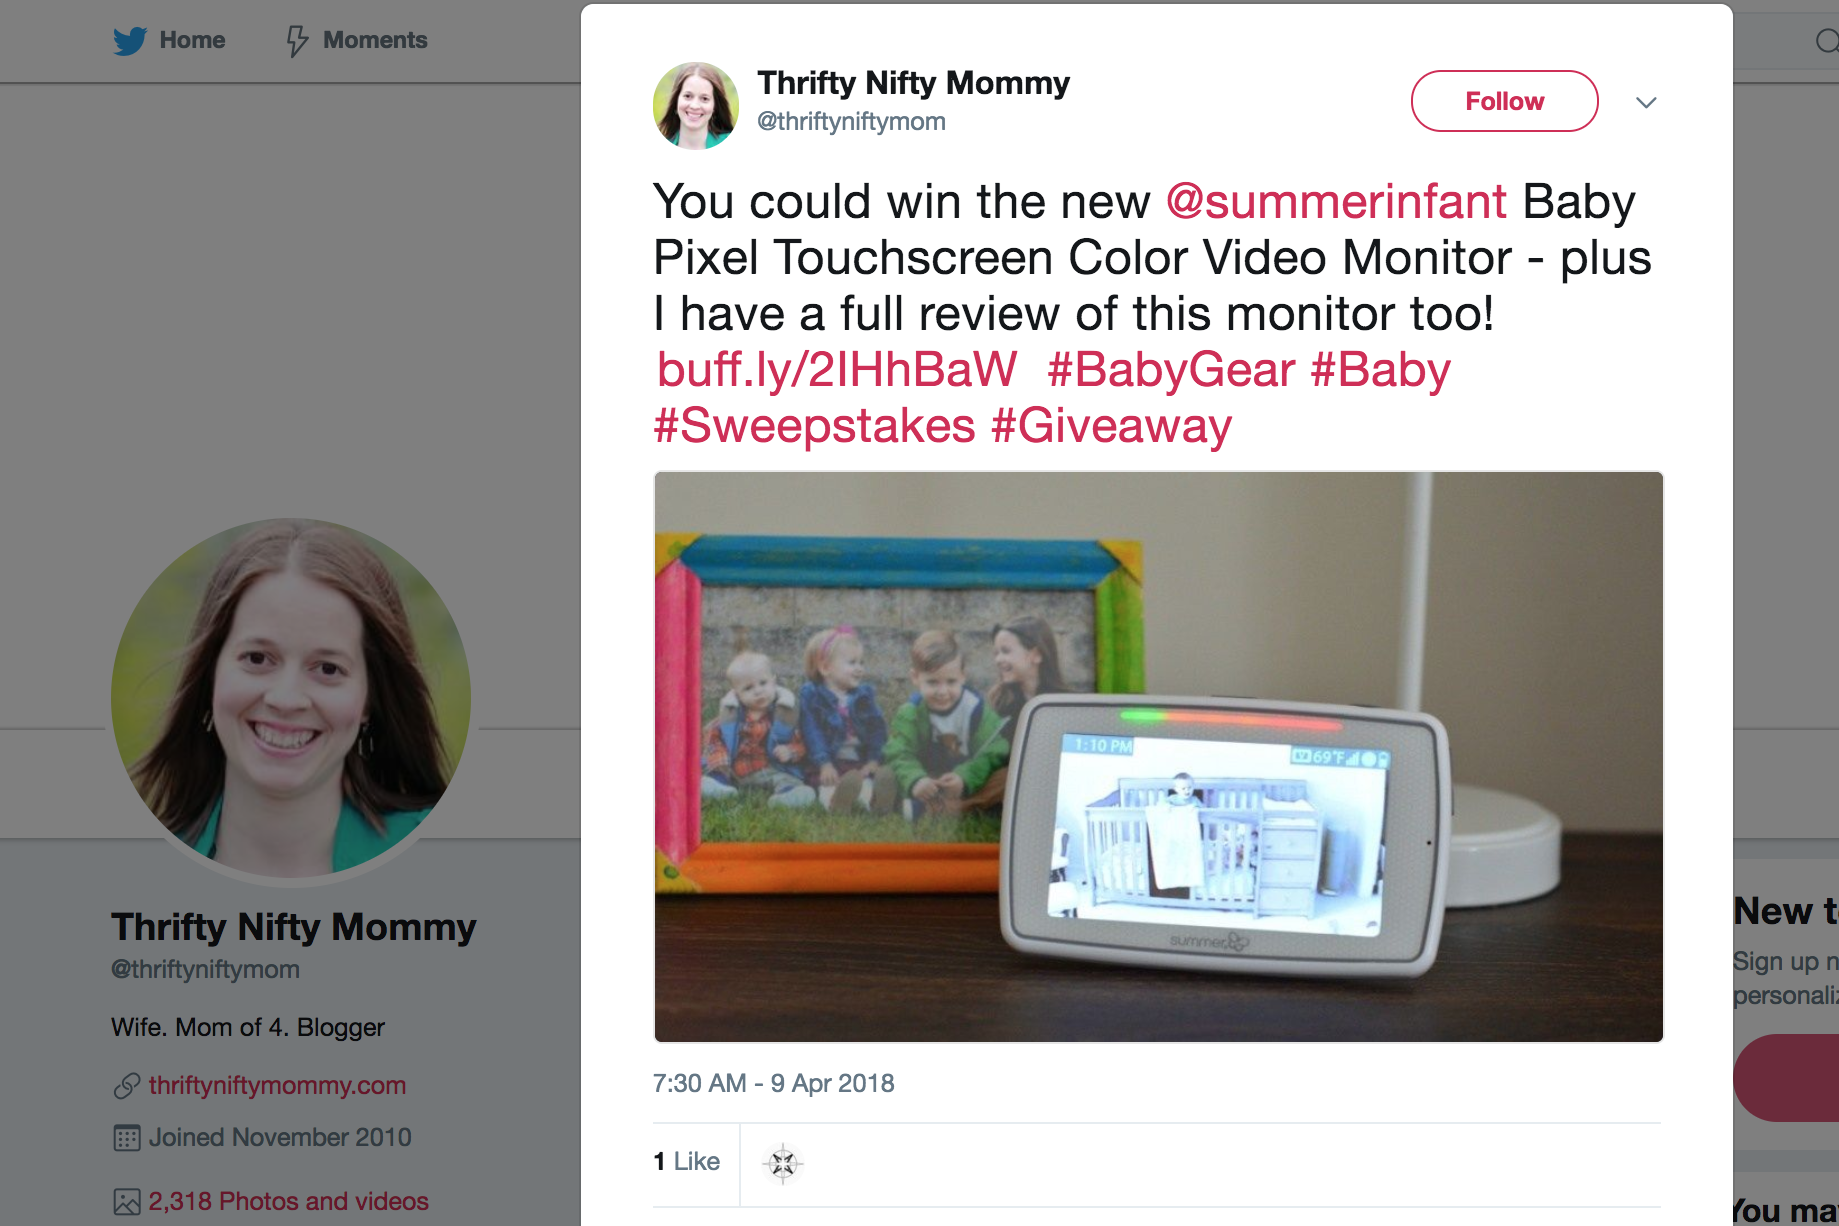 2018.04.09_Thrifty Nifty Mommy, Twitter_Summer Infant Baby Pixel giveaway_cropped 3x2.png